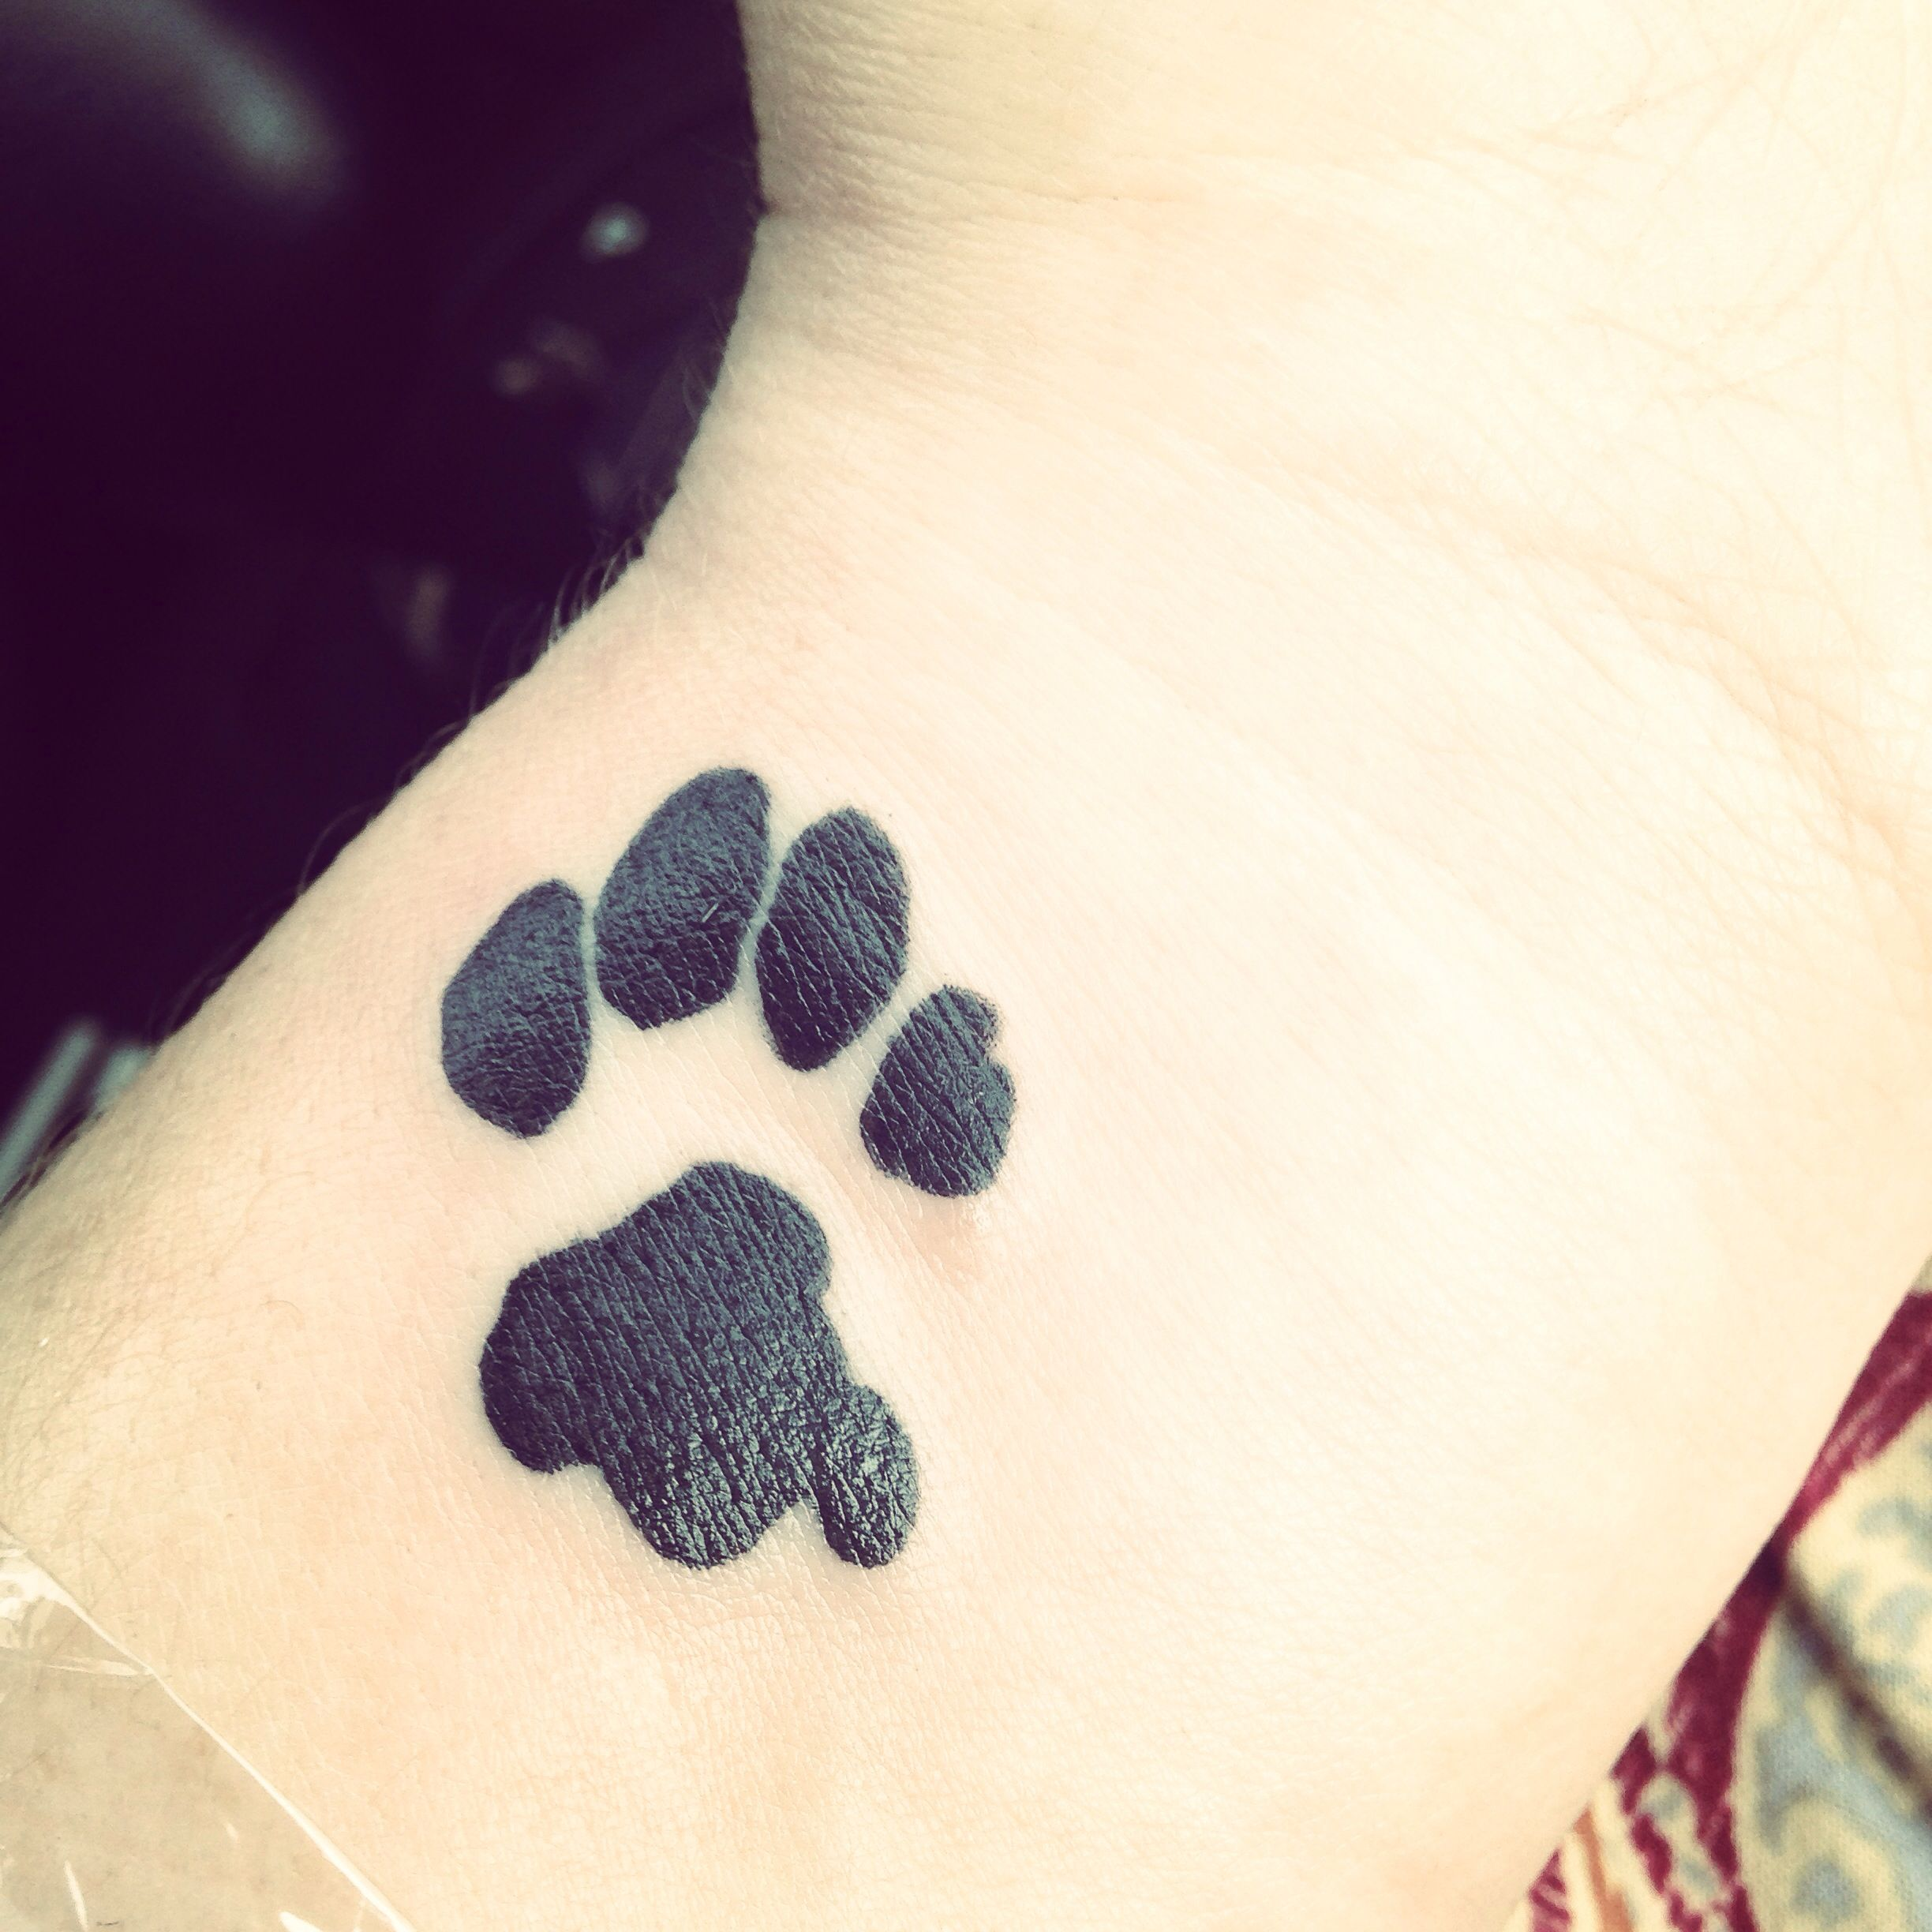 Paw Print tattoo that's my beloved cats actual paw print! I